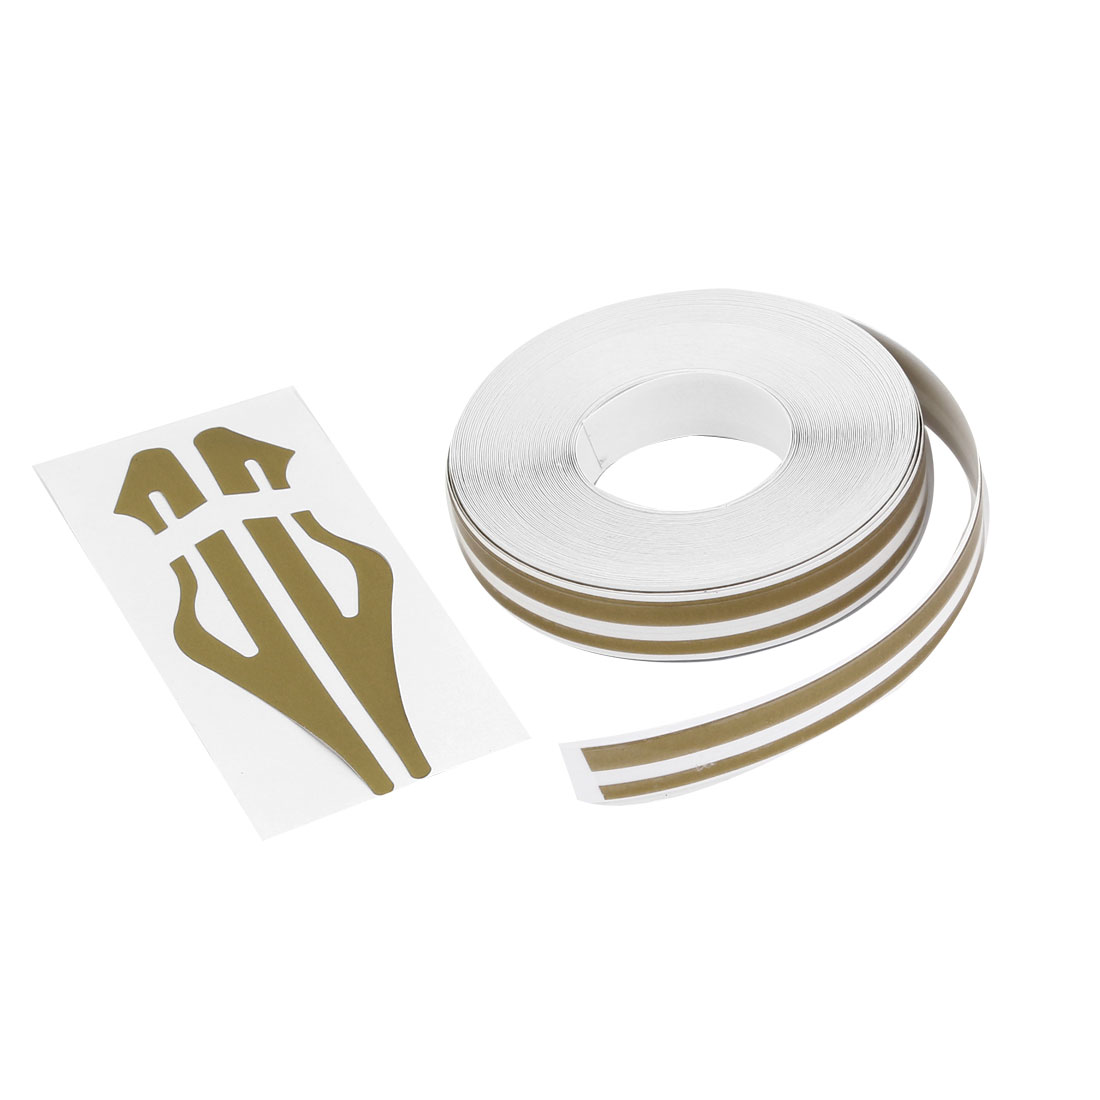 Gold Tone White Stripe Car Vehicle Self Adhesive Striping Tape Line 12mm x 9800mm